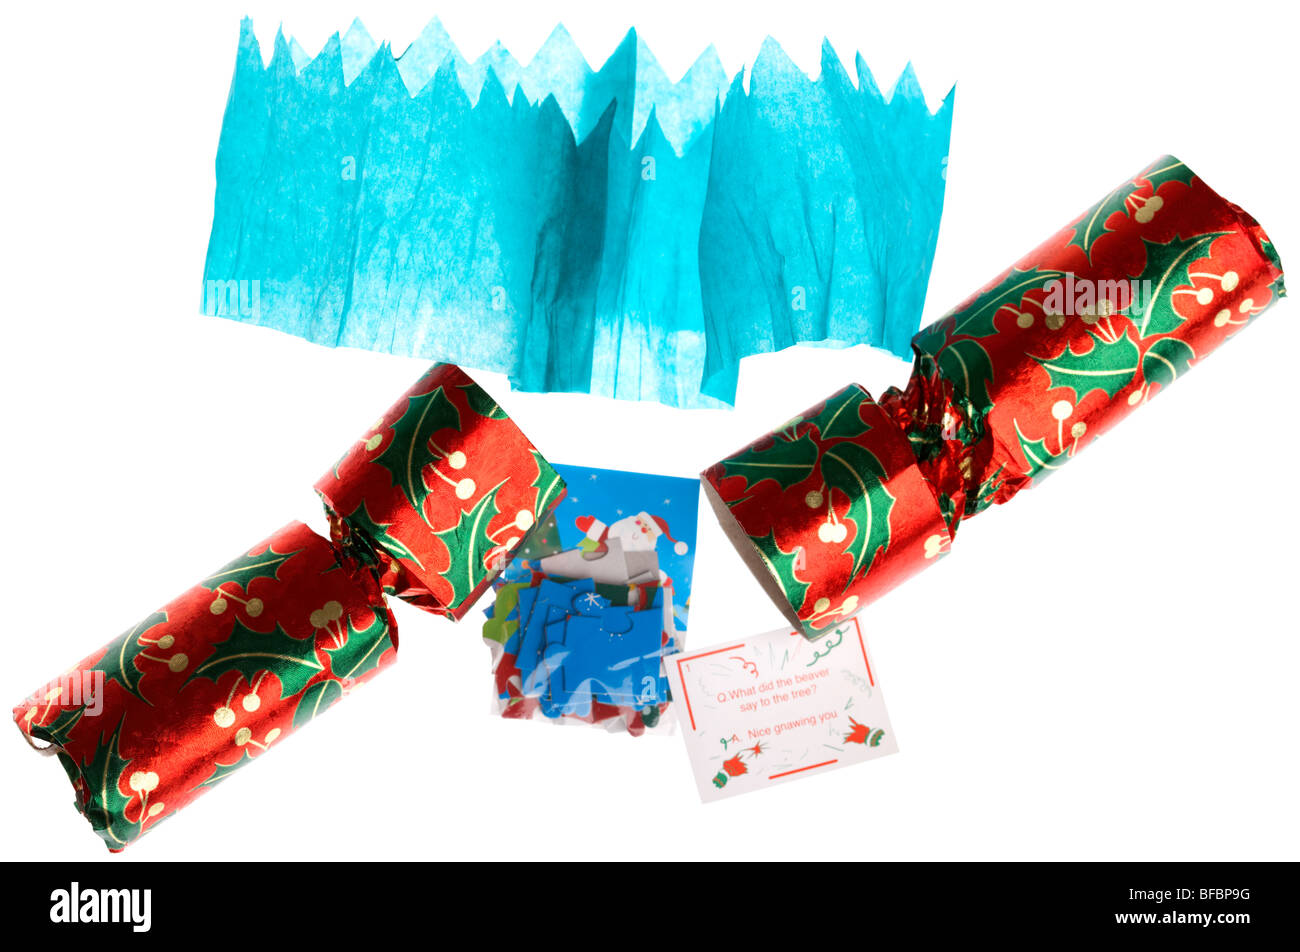 Novelty Christmas Crackers